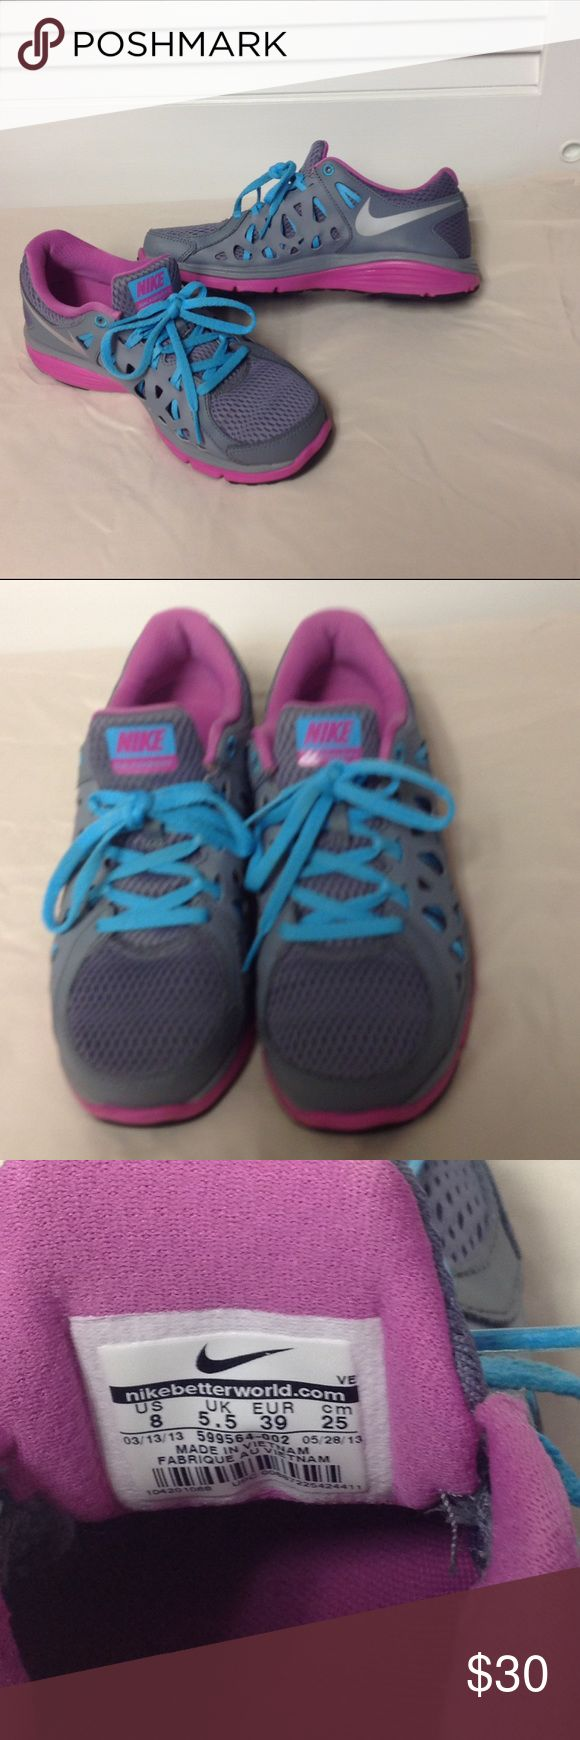 Nike Dual Fusion Run 2 Sneakers Nike Sneakers worn maybe 3 times, Great condition and great colors💕💕 Nike Shoes Athletic Shoes